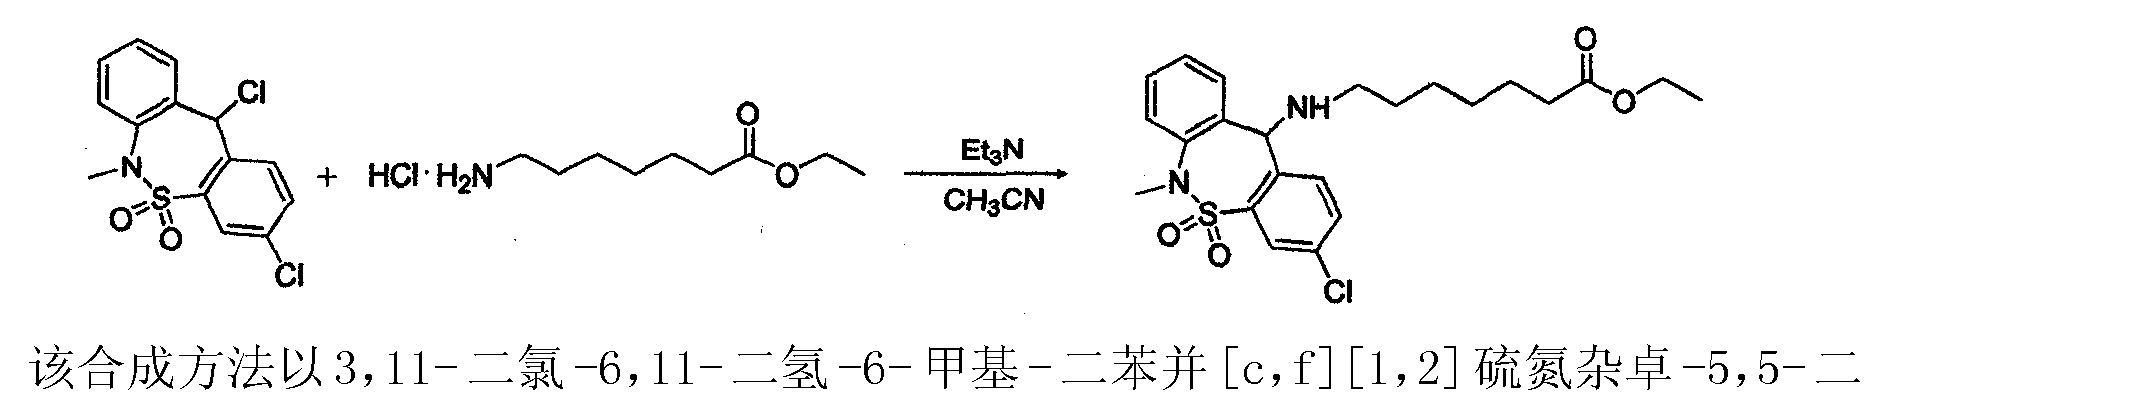 CN103420937A - Synthesis method of tianeptine sodium - Google Patents